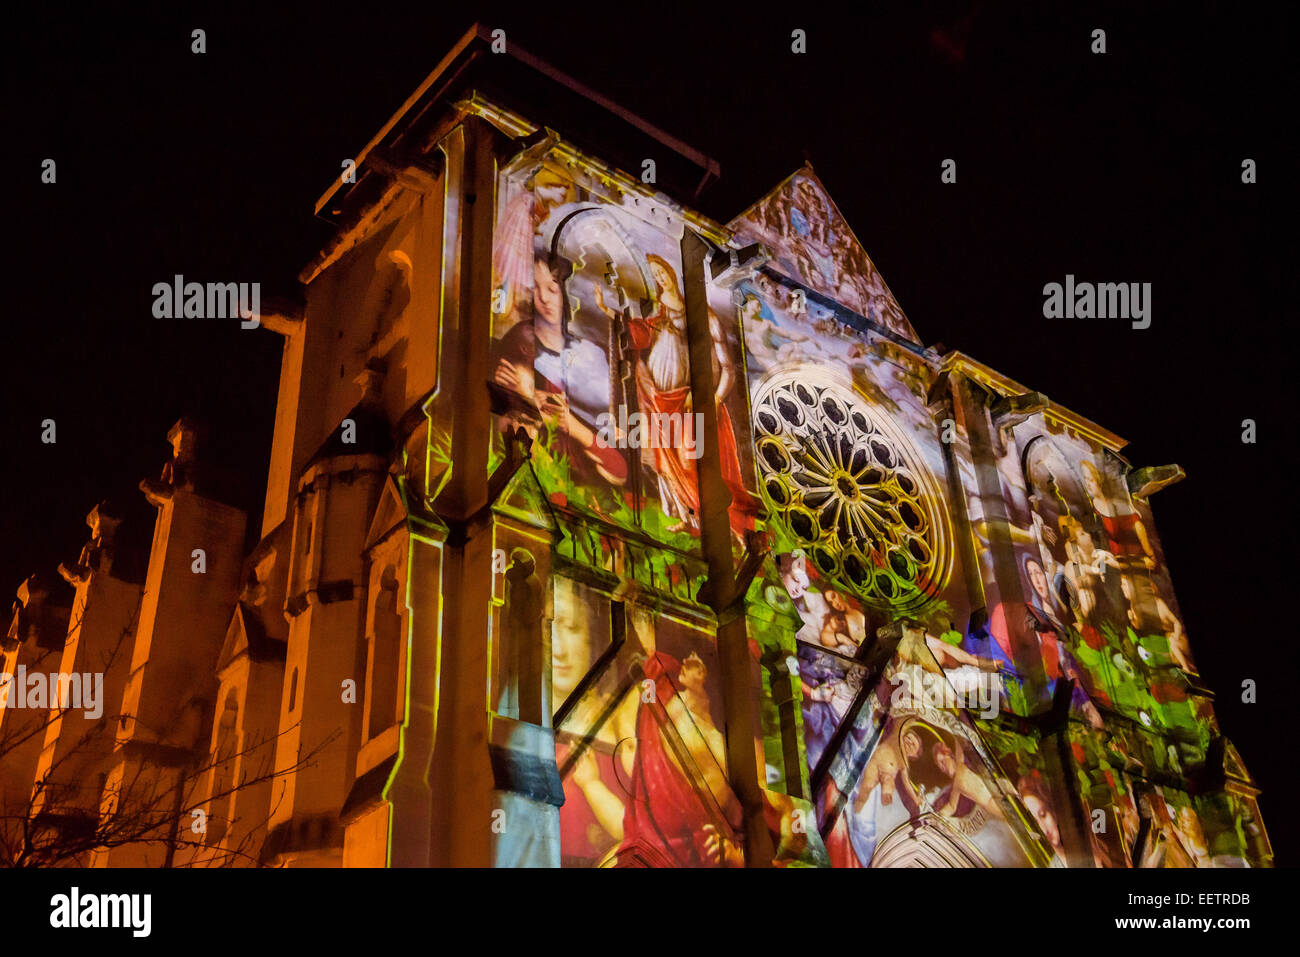 Sound and light show projection on Saint Roch Church during Christmas, Montpellier, France - Stock Image